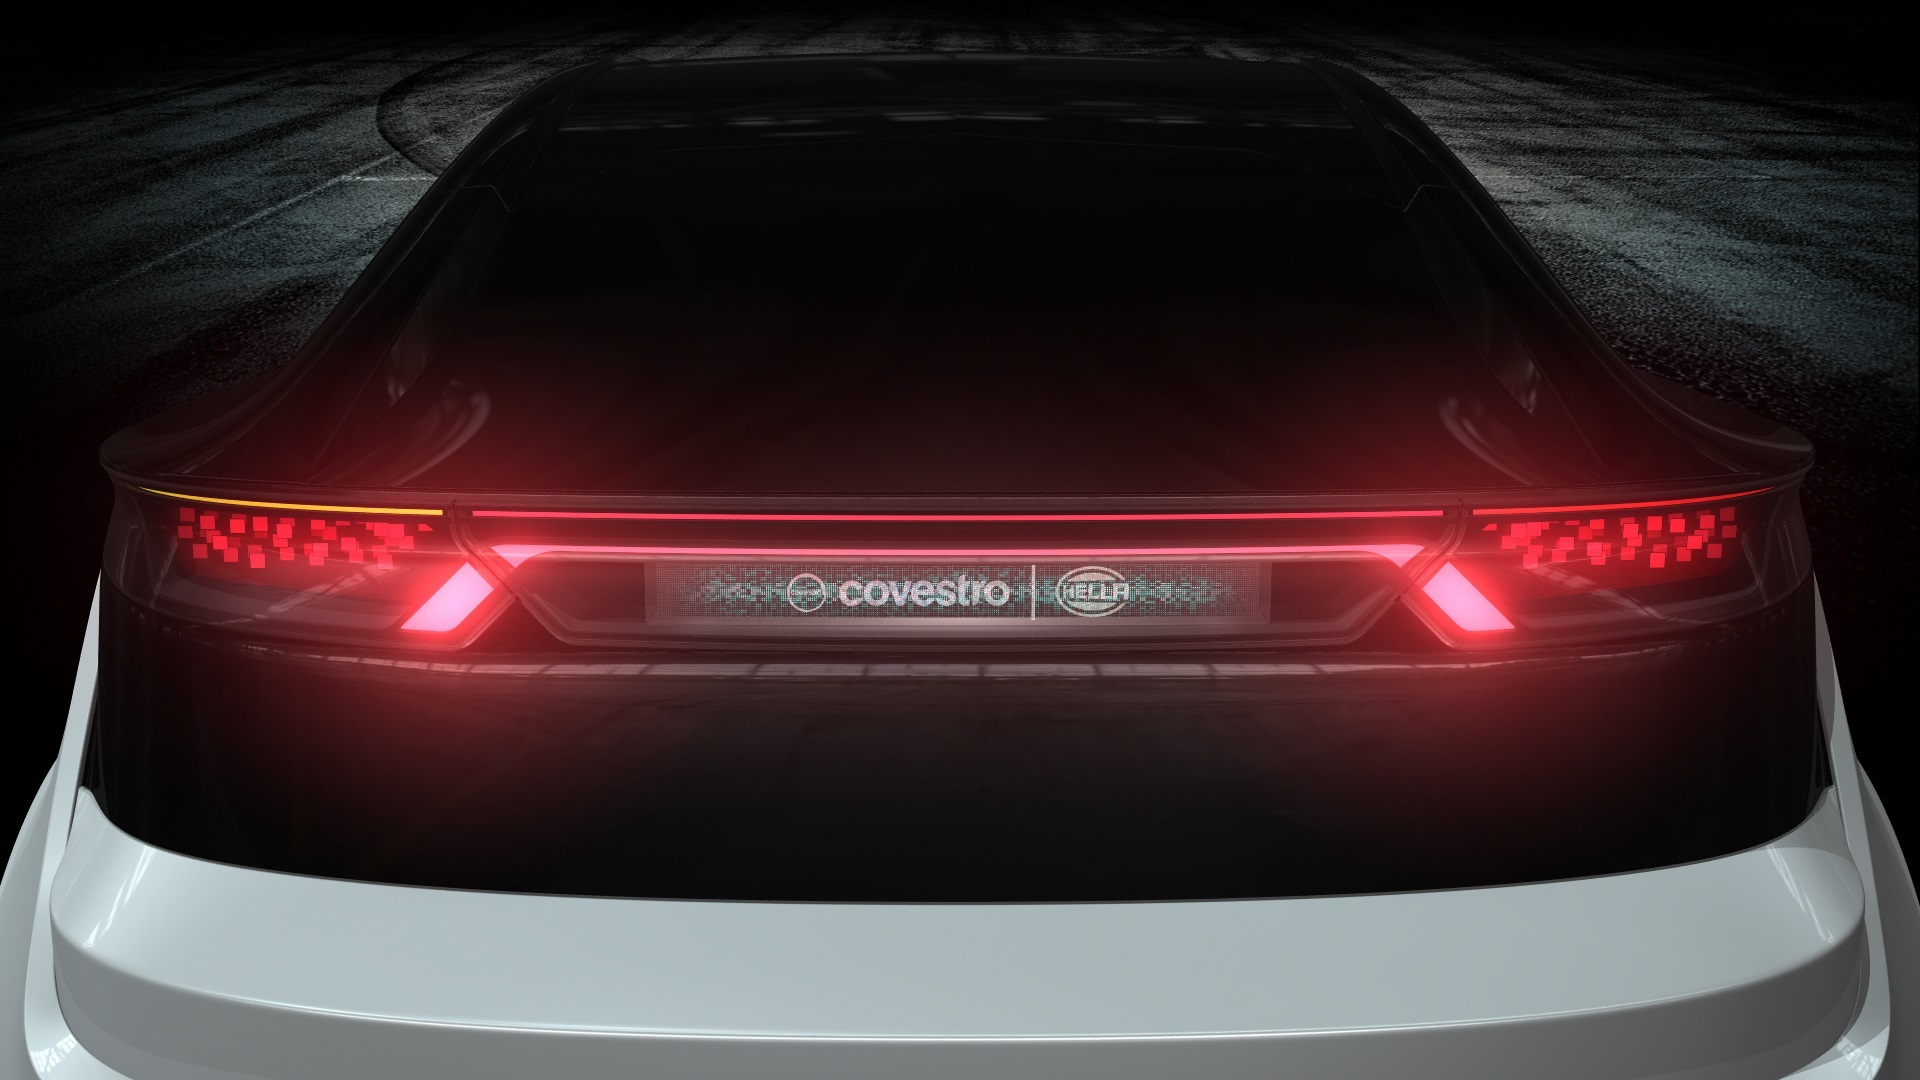 The rear lighting is equipped with holographic technology